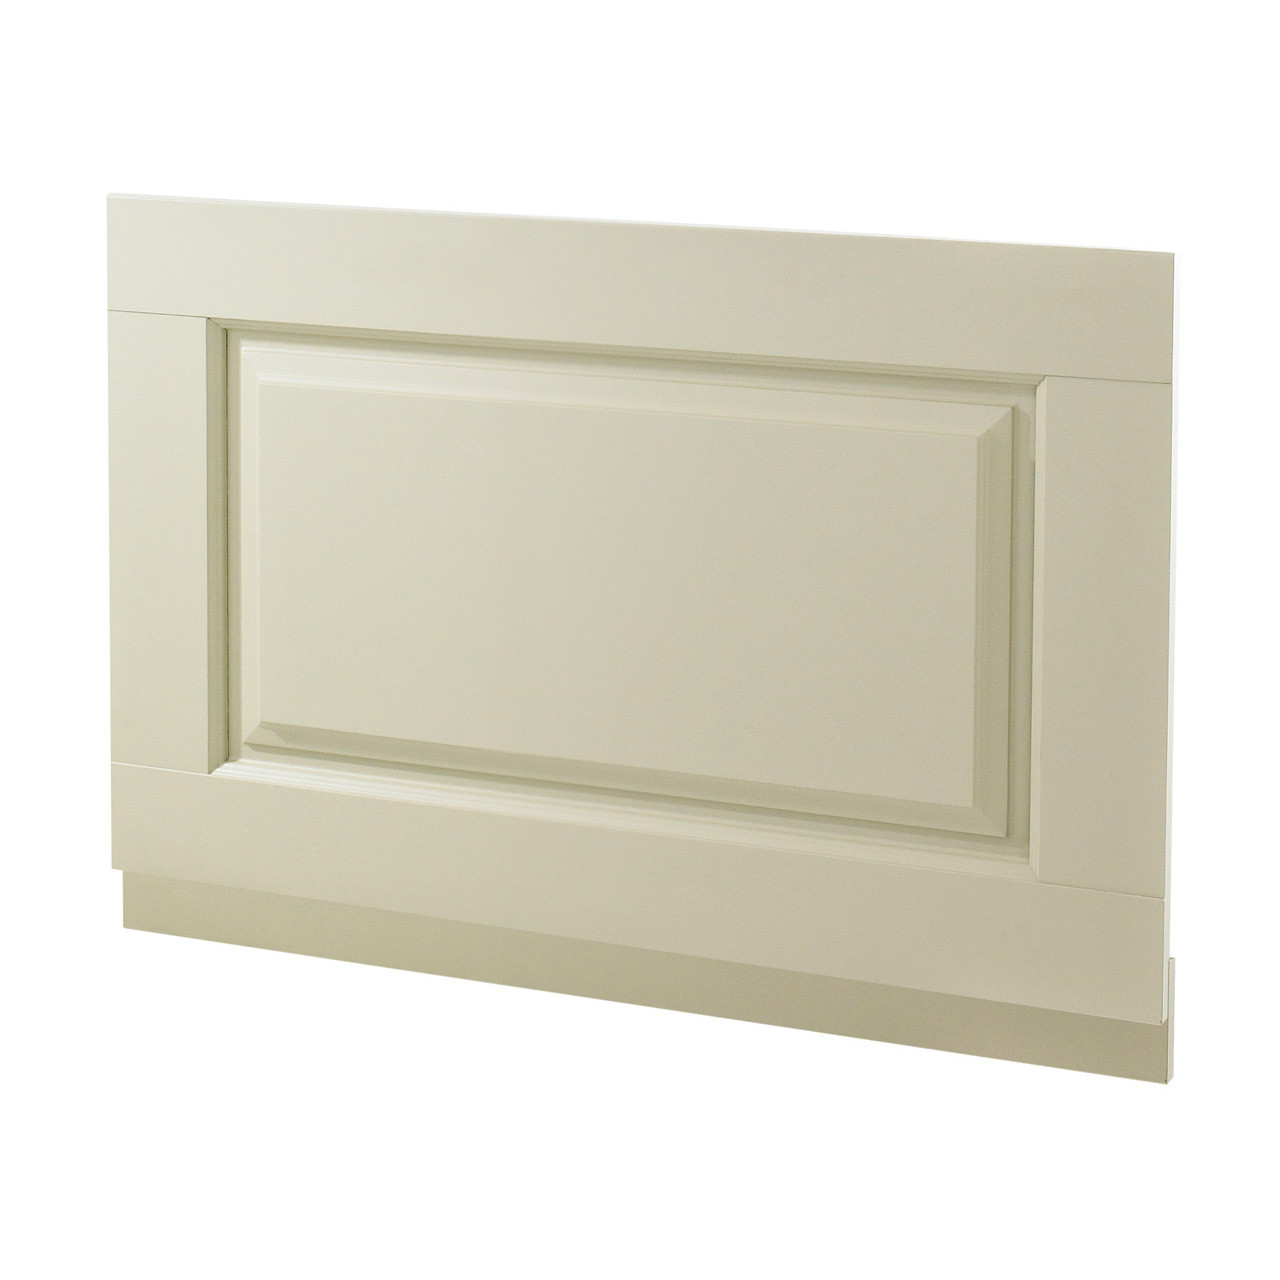 Old London 700 End Panel and Plinth 680mm x 480/100mm - NLP211